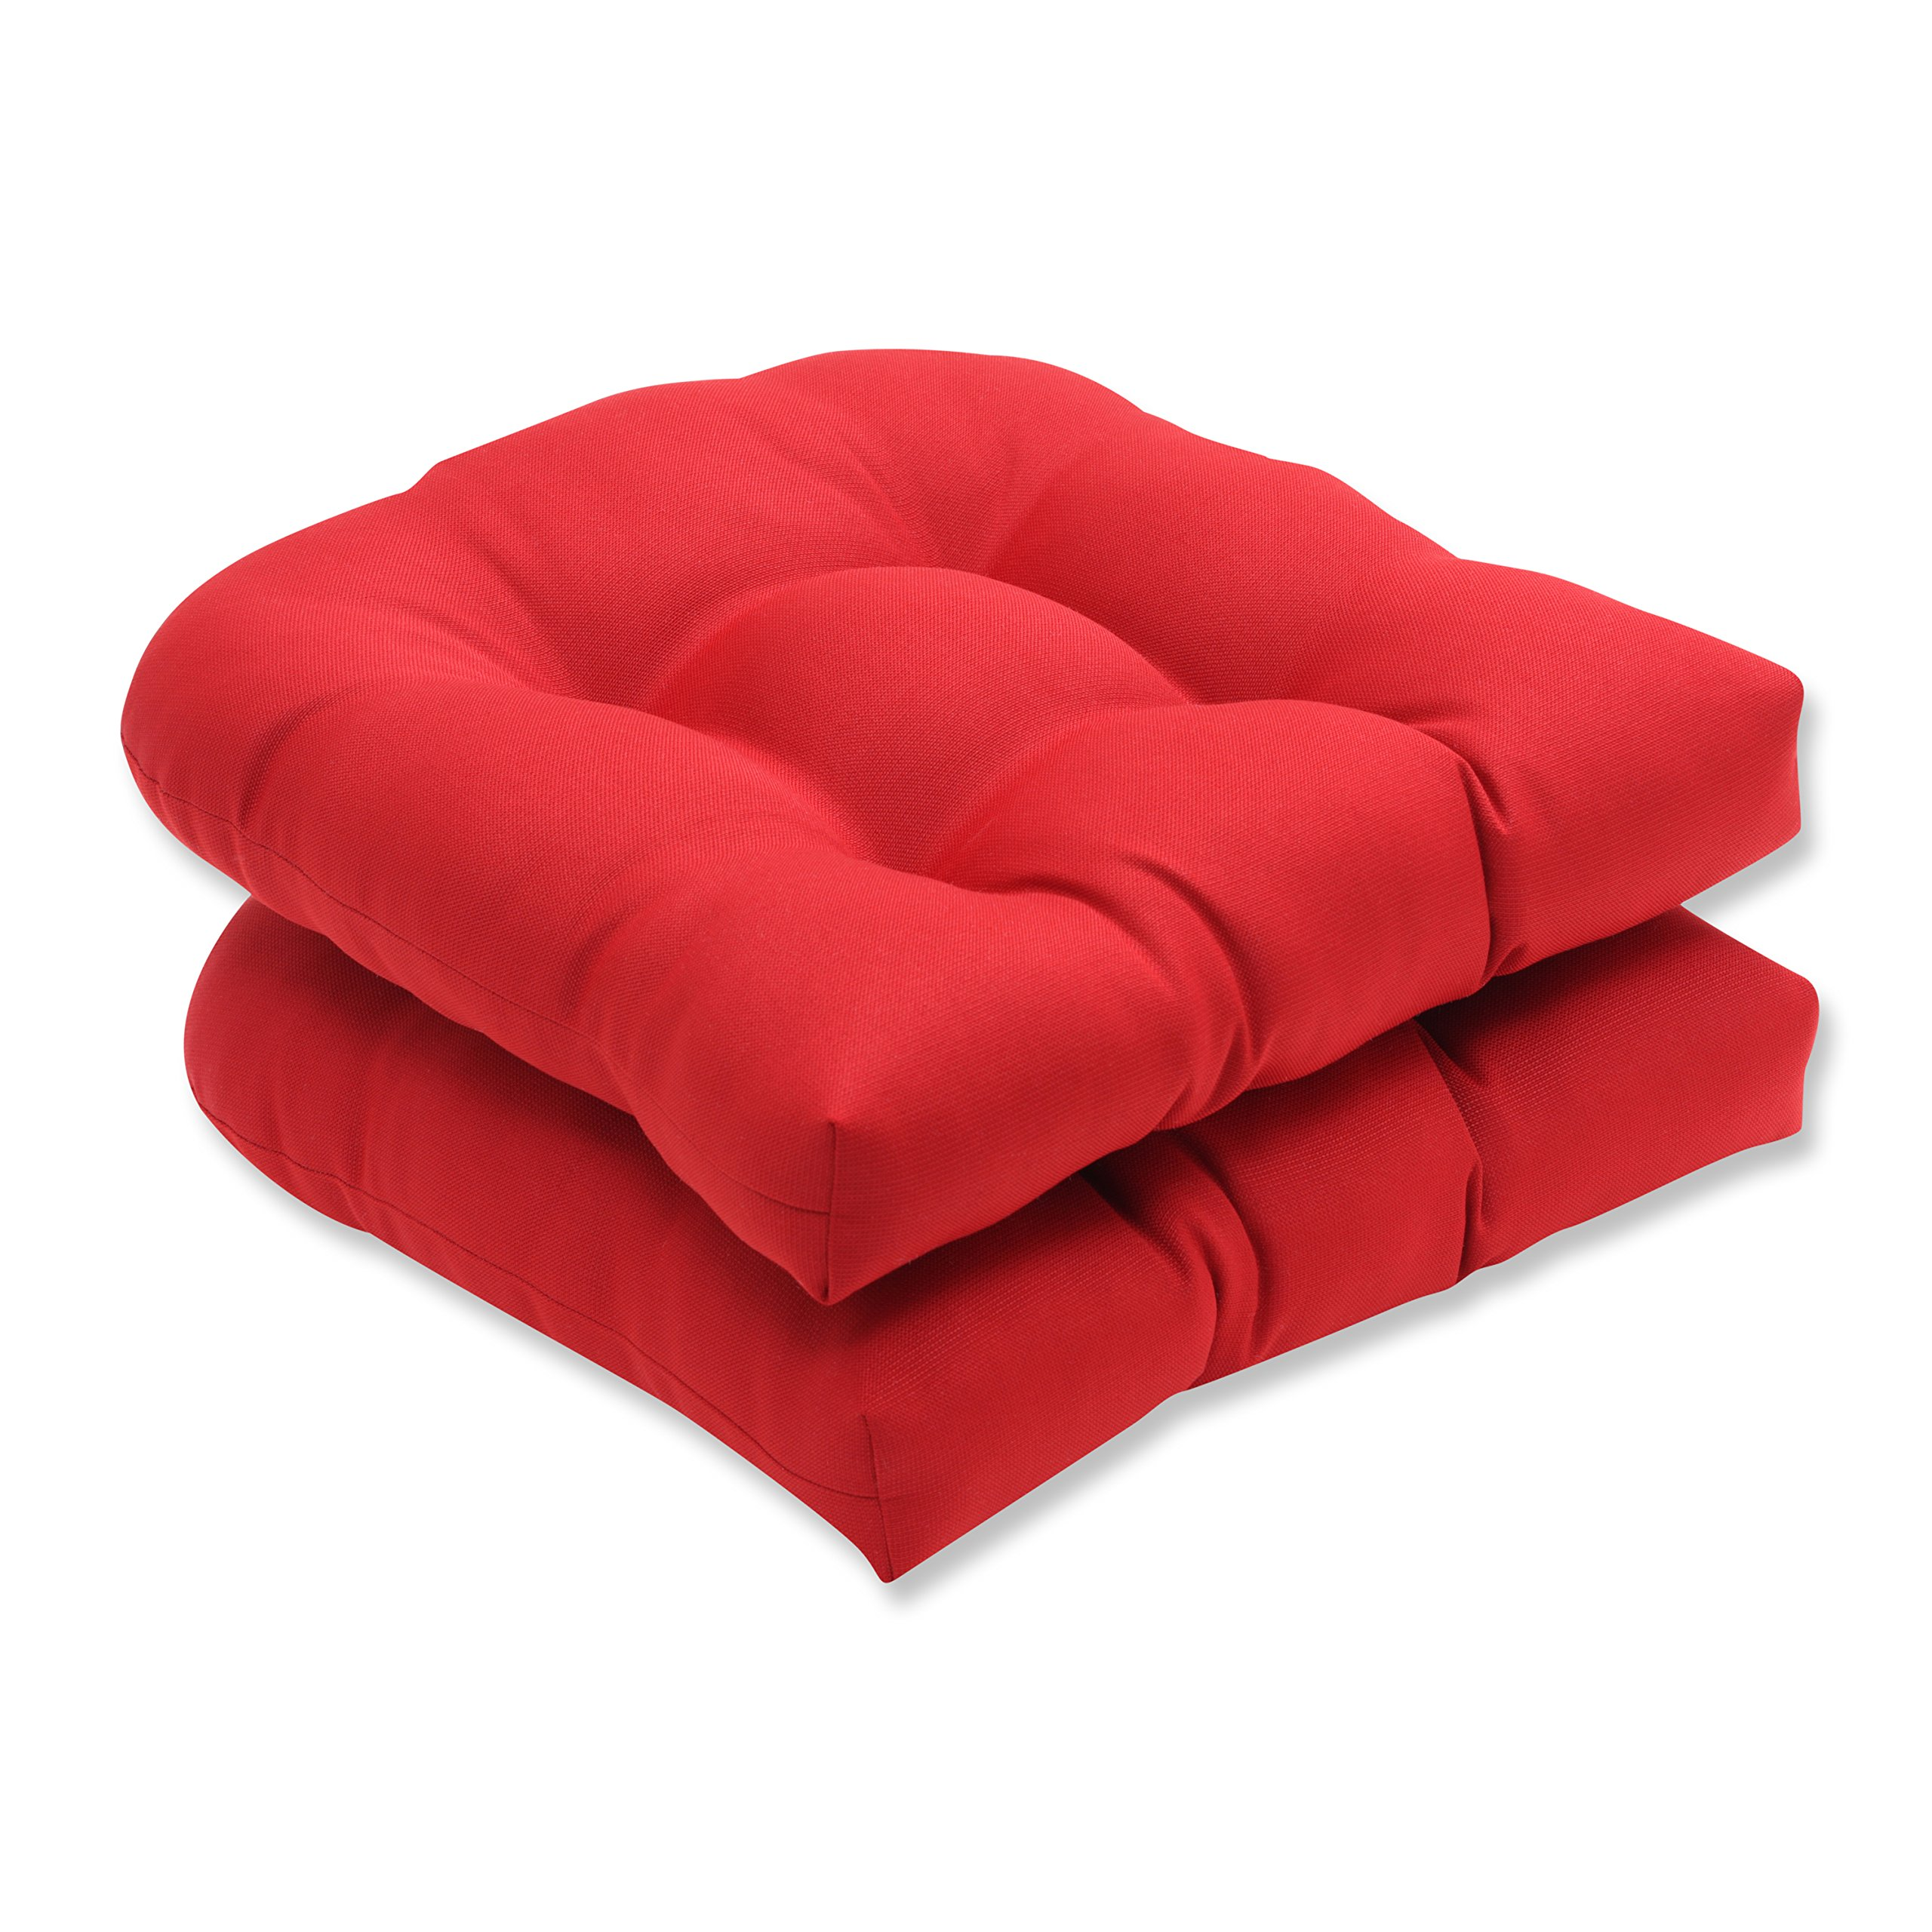 Pillow Perfect Indoor Outdoor Red Solid Wicker Seat